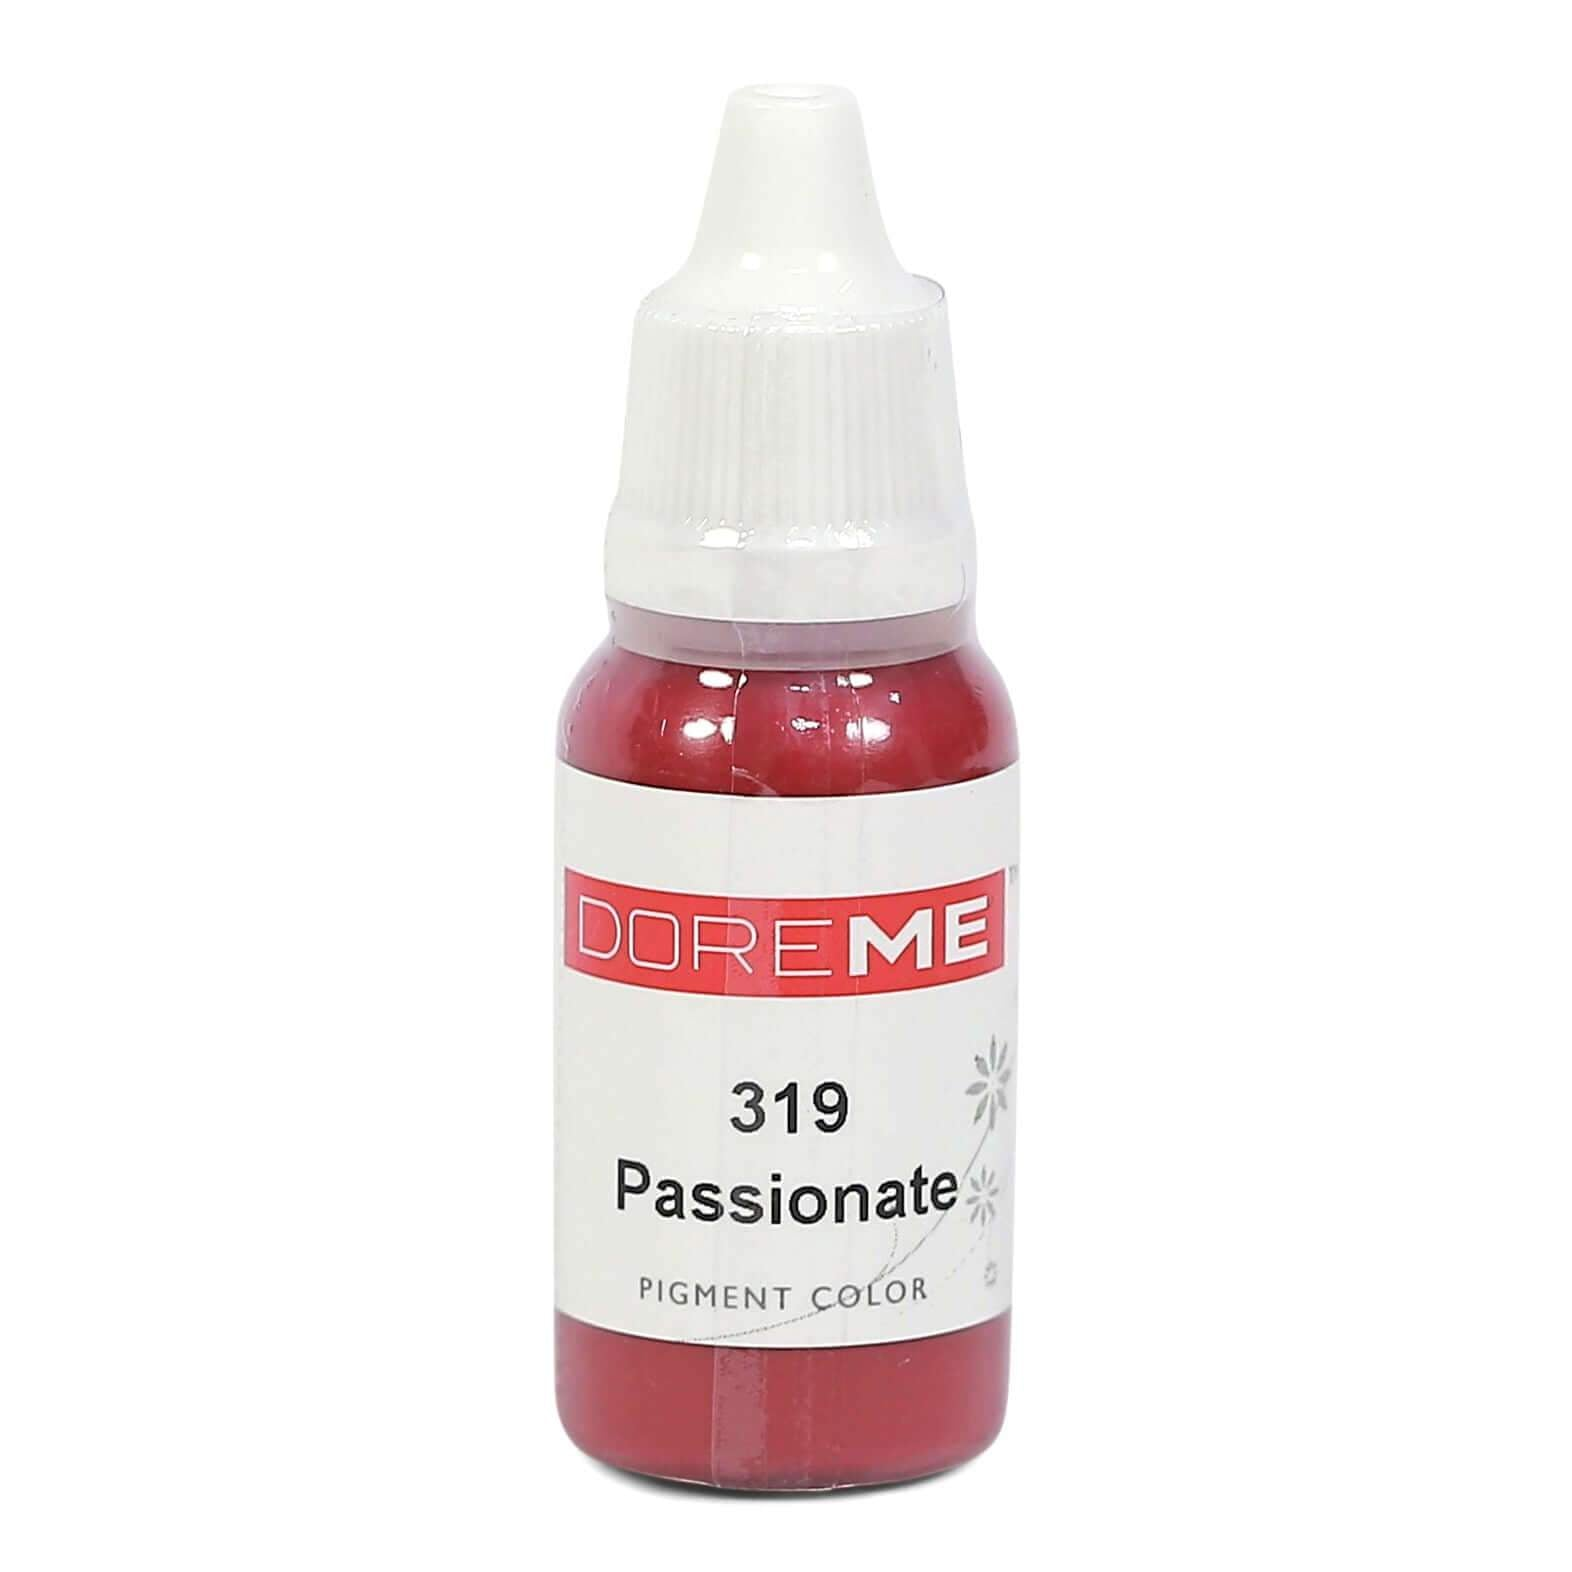 Permanent Makeup pigments Doreme Micropigmentation Eyebrow, Eyeliner, Lip Colours 319 Passionate (c) - Beautiful Ink UK trade and wholesale supplier